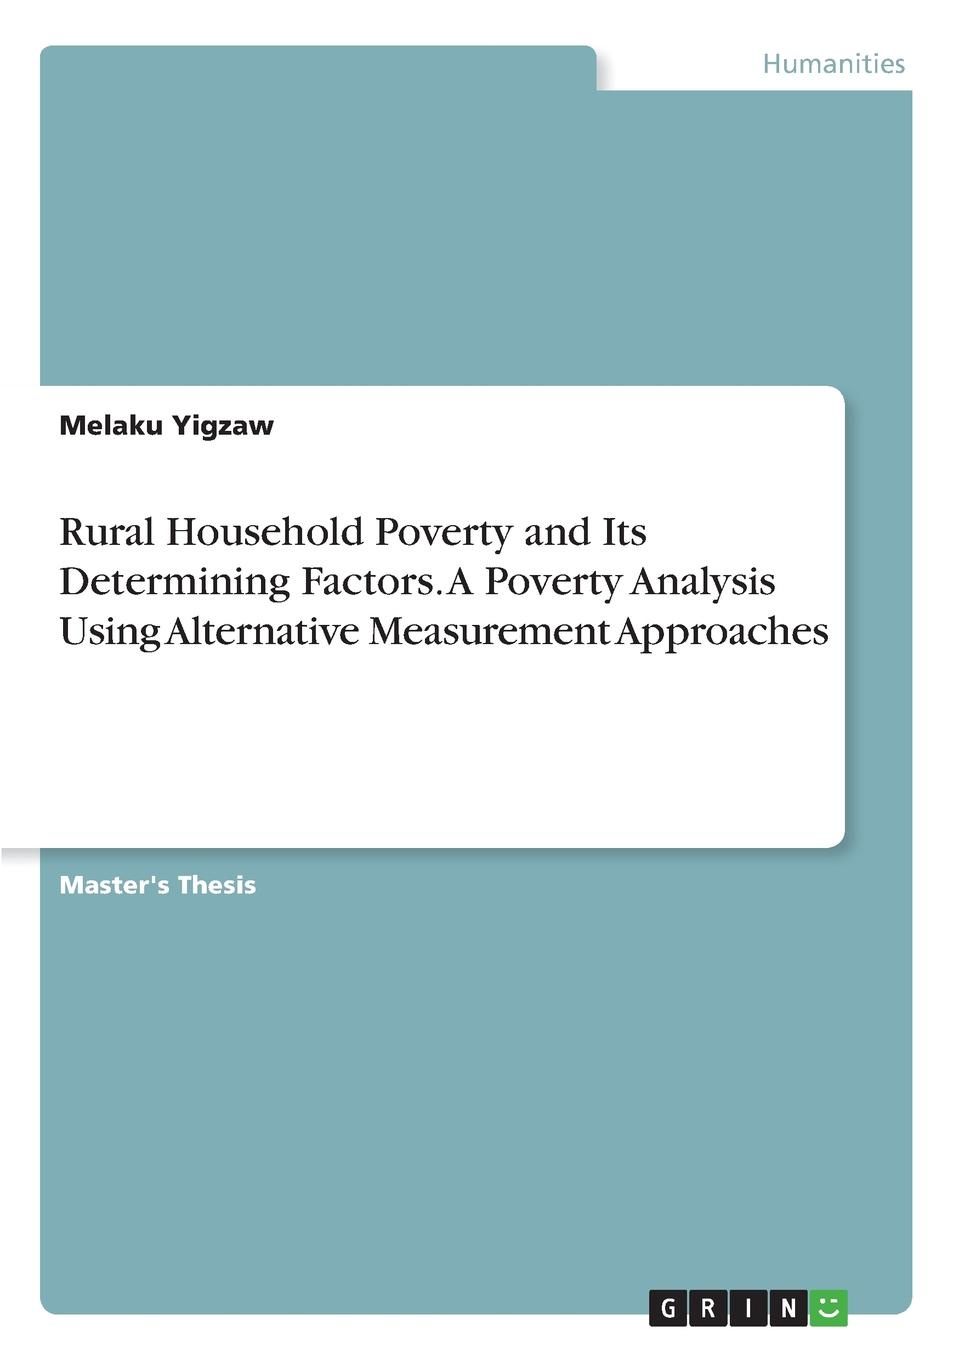 Melaku Yigzaw Rural Household Poverty and Its Determining Factors. A Poverty Analysis Using Alternative Measurement Approaches persistence of poverty in rural ghana